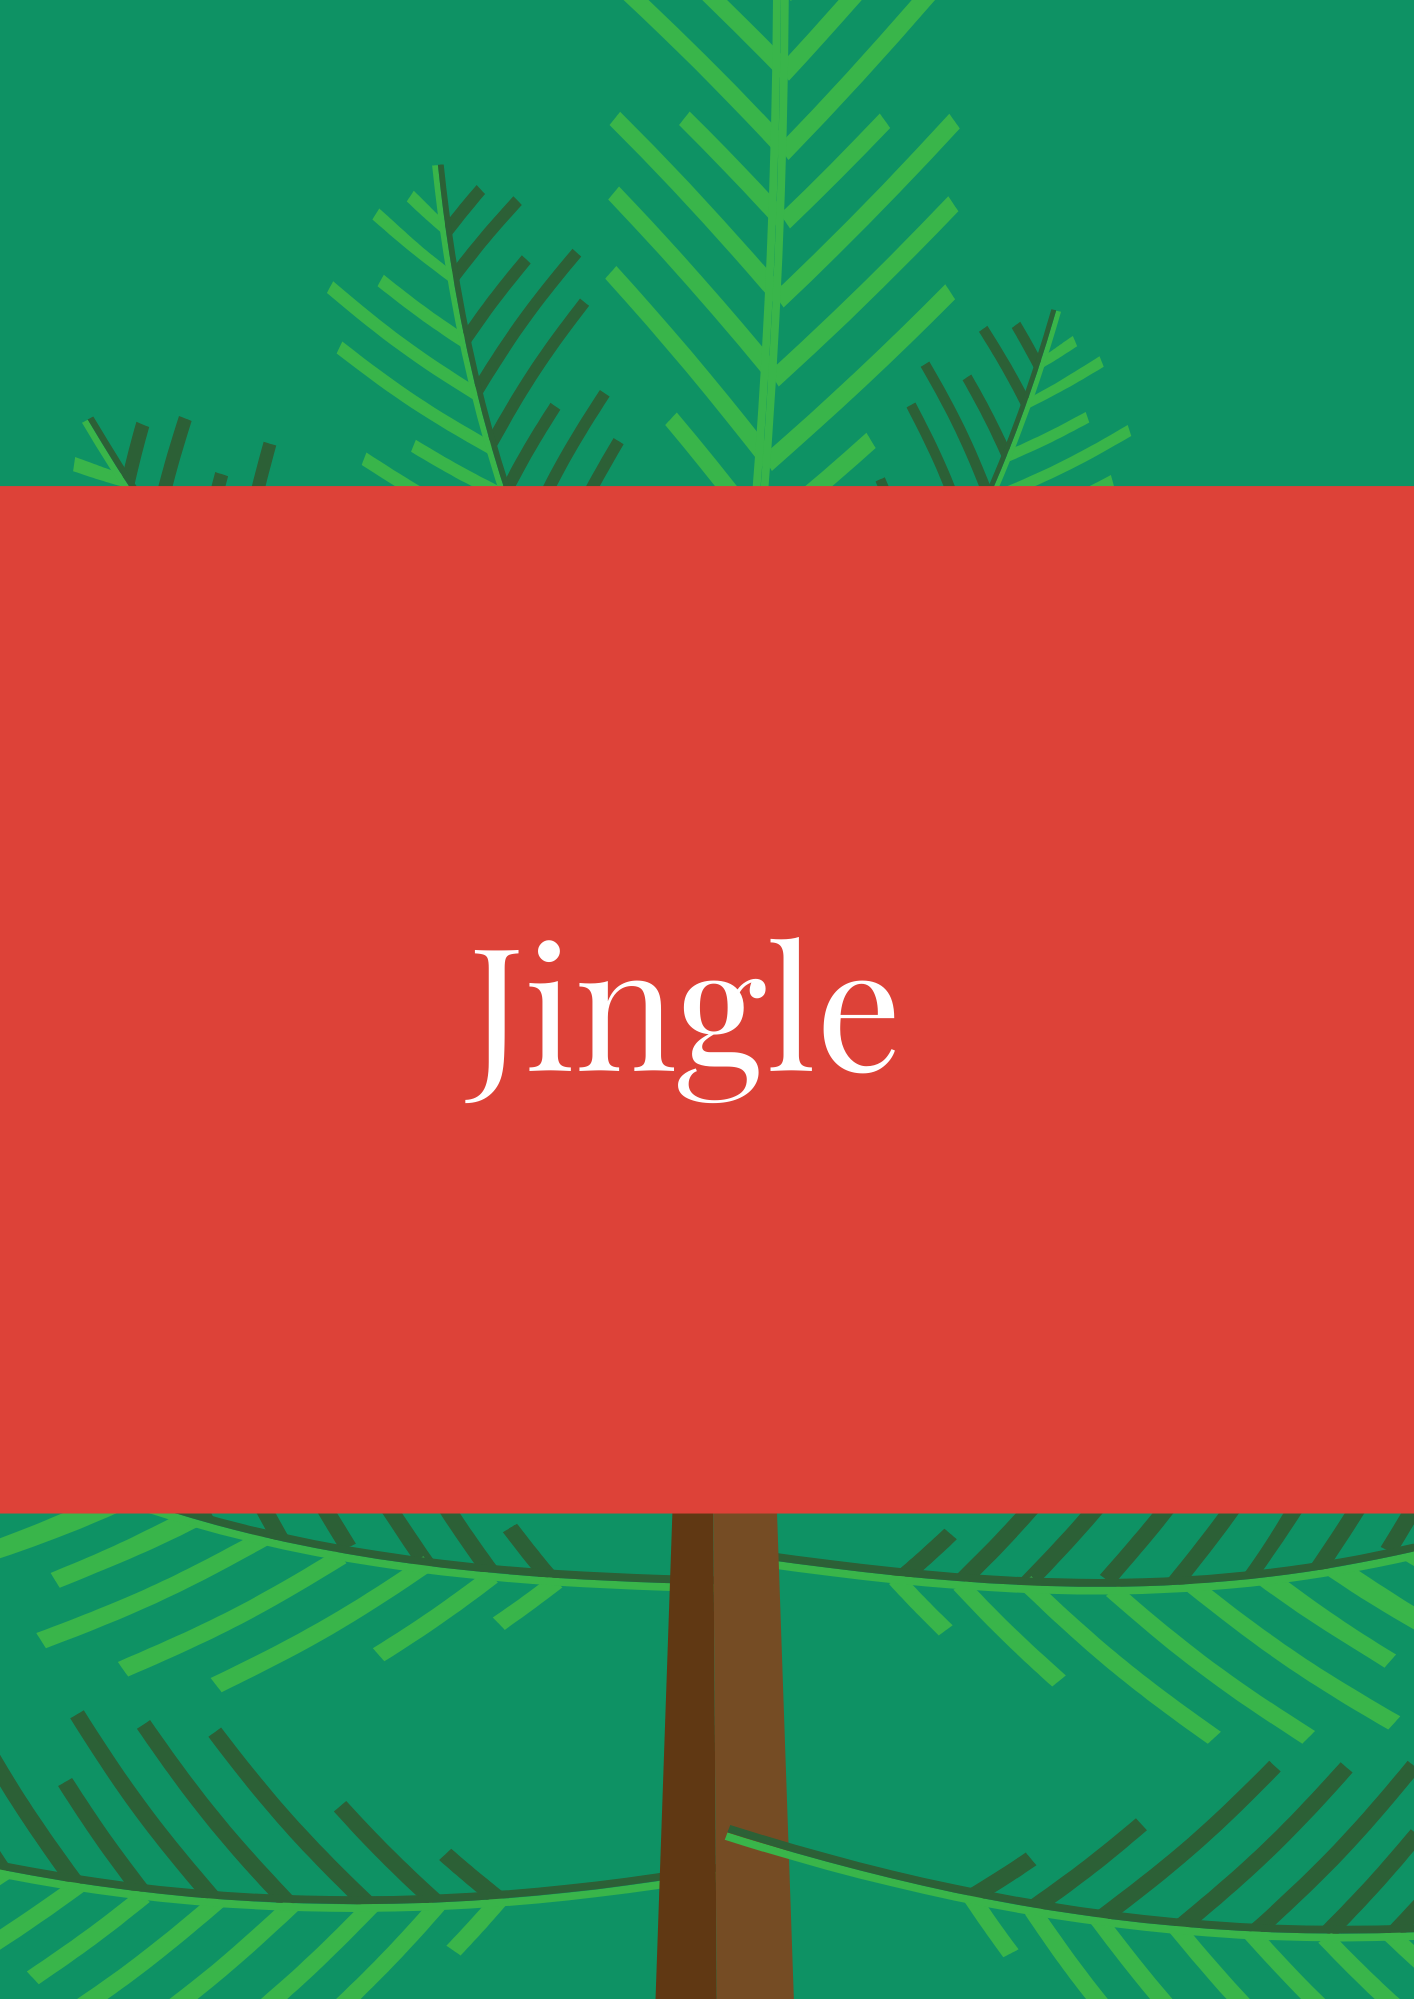 Jingle Elf Names